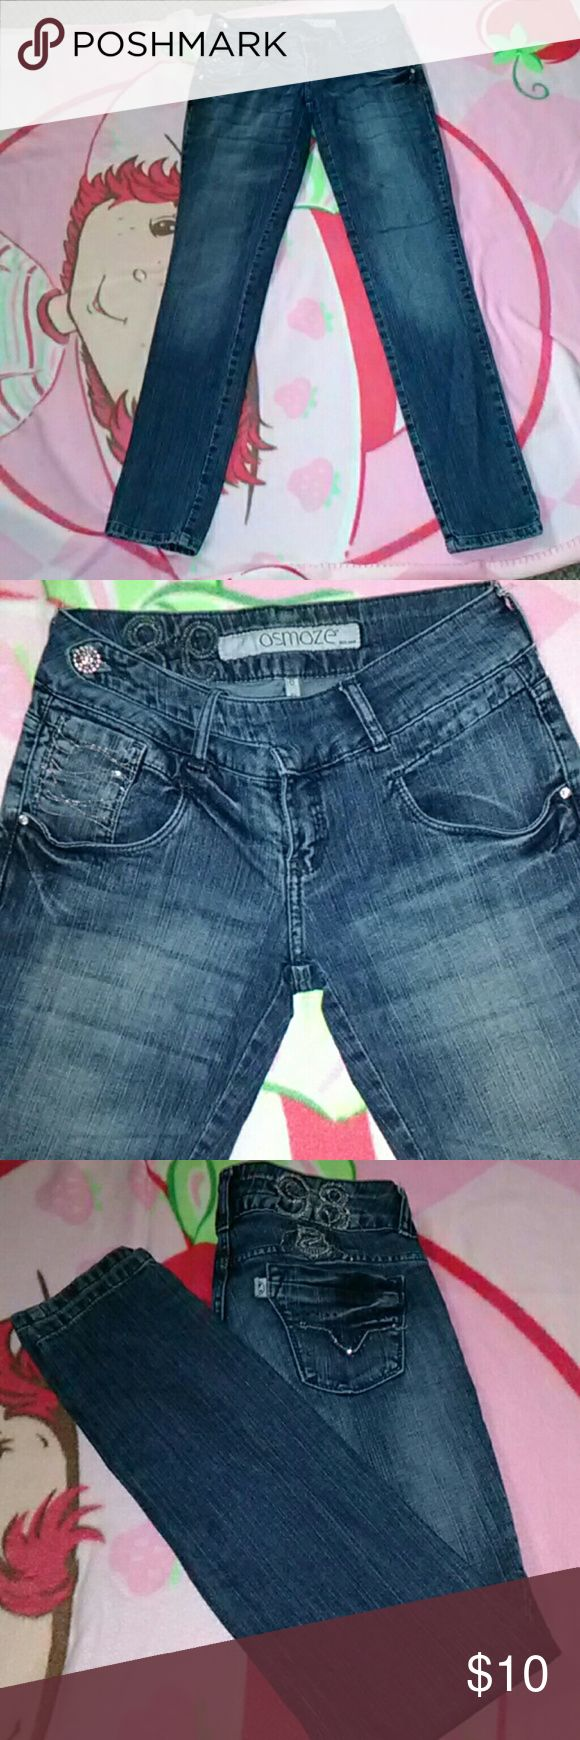 Ozmoze Cute jeans ozmoze  Brazil jeans.. Bought off here but to small for me!!  There size 36 ...size 36 is like a size 3/4.. I wear 5/6 n these r to small.. There so cute tho osmoze Jeans Skinny